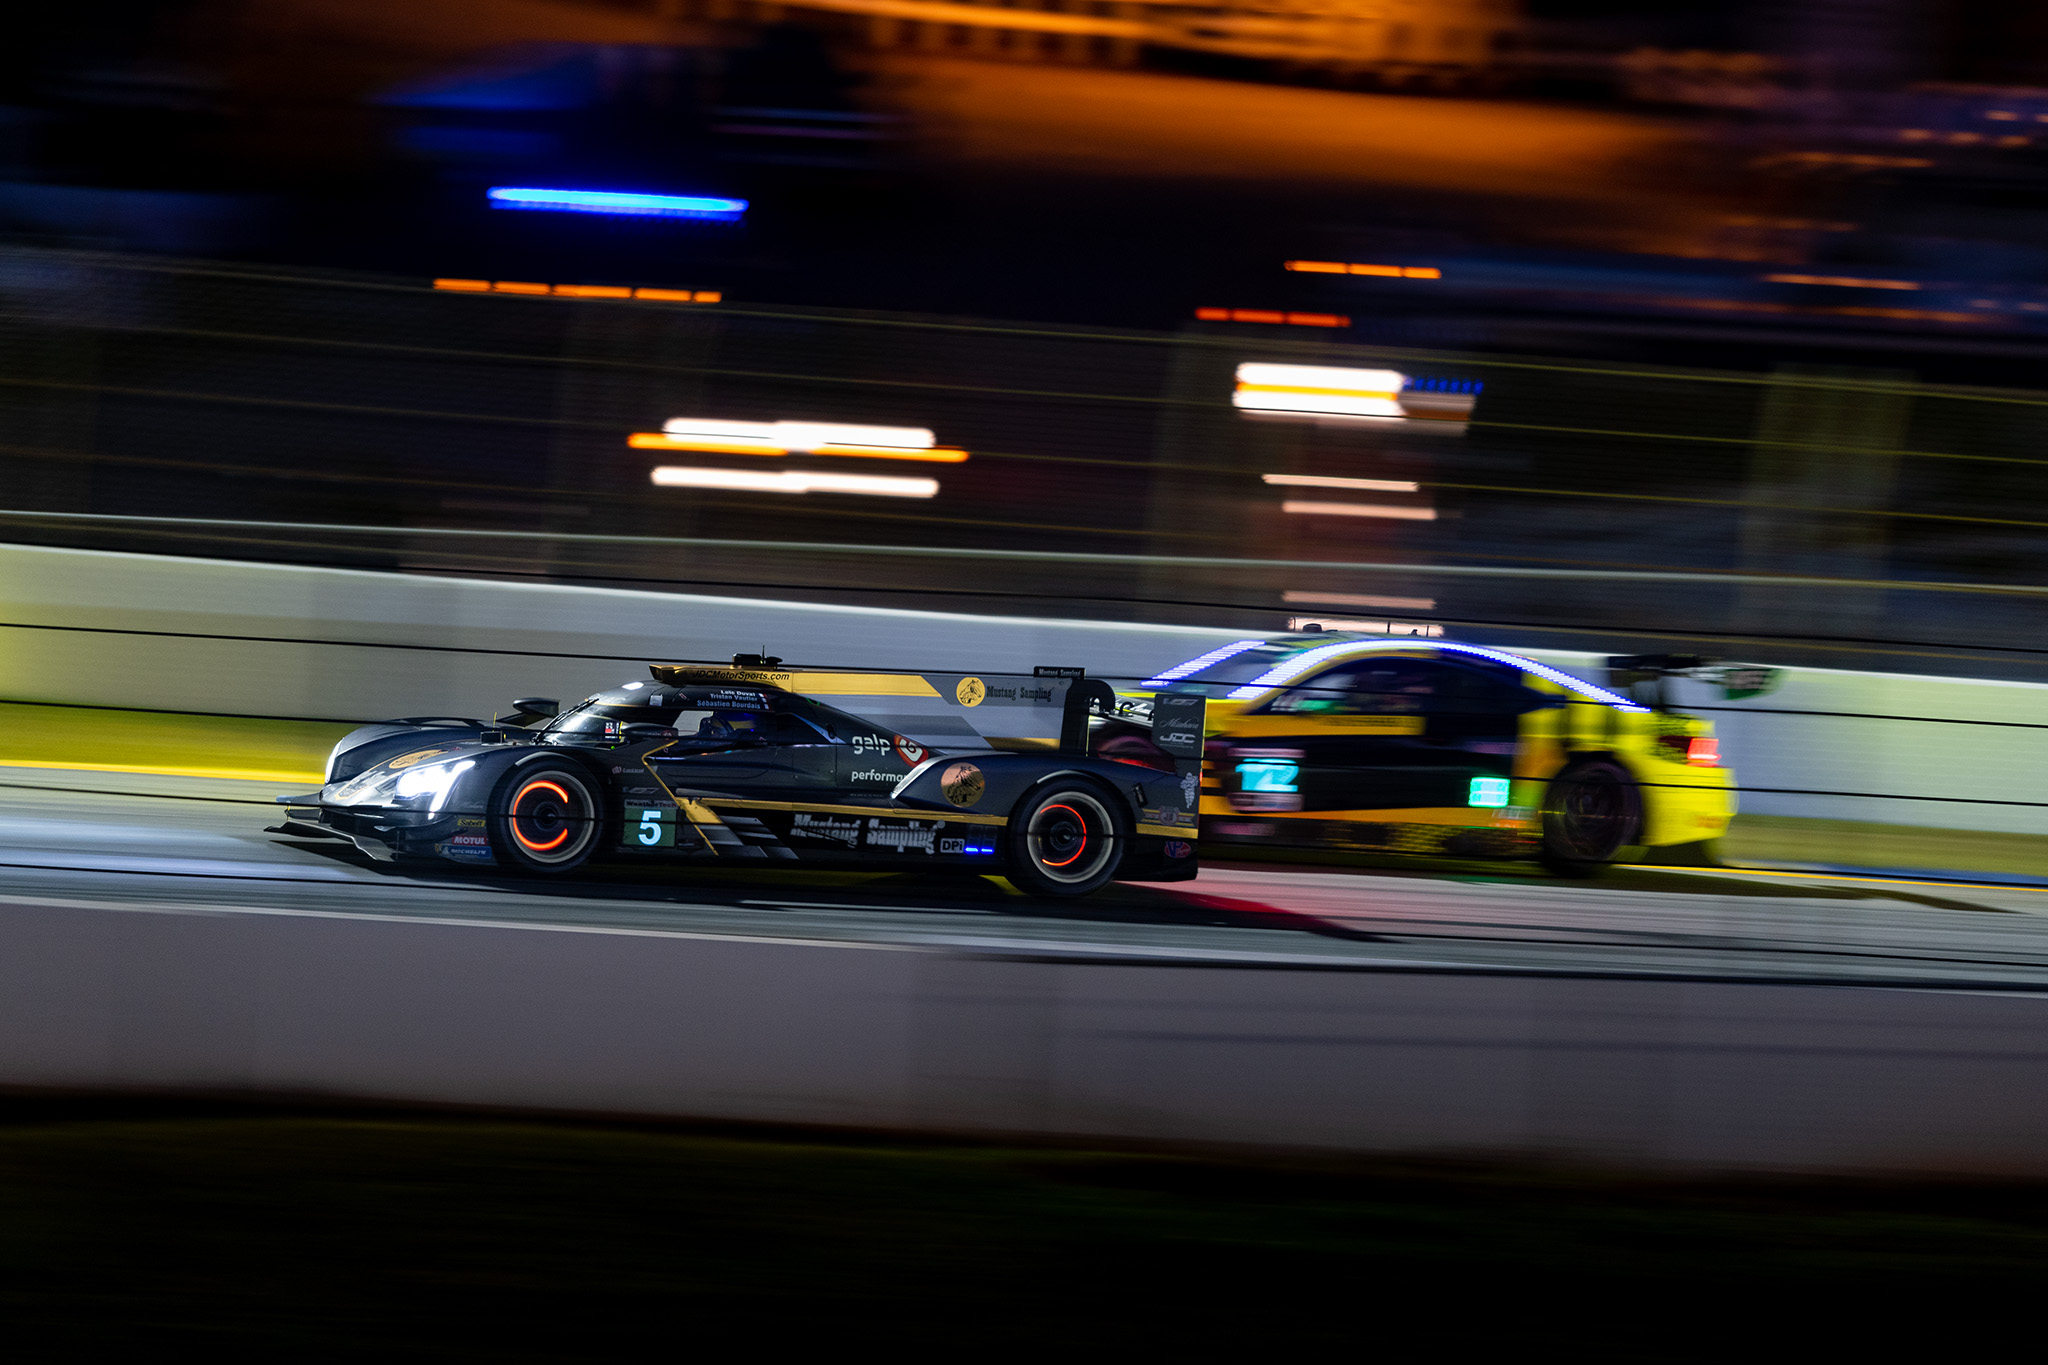 Sebastien Bourdais and the JDC Miller Motorsports Cadillac DPi-V.R cut through the night during the IMSA Petit Le Mans at Road Atlanta, motorsports photography by Luke Munnell